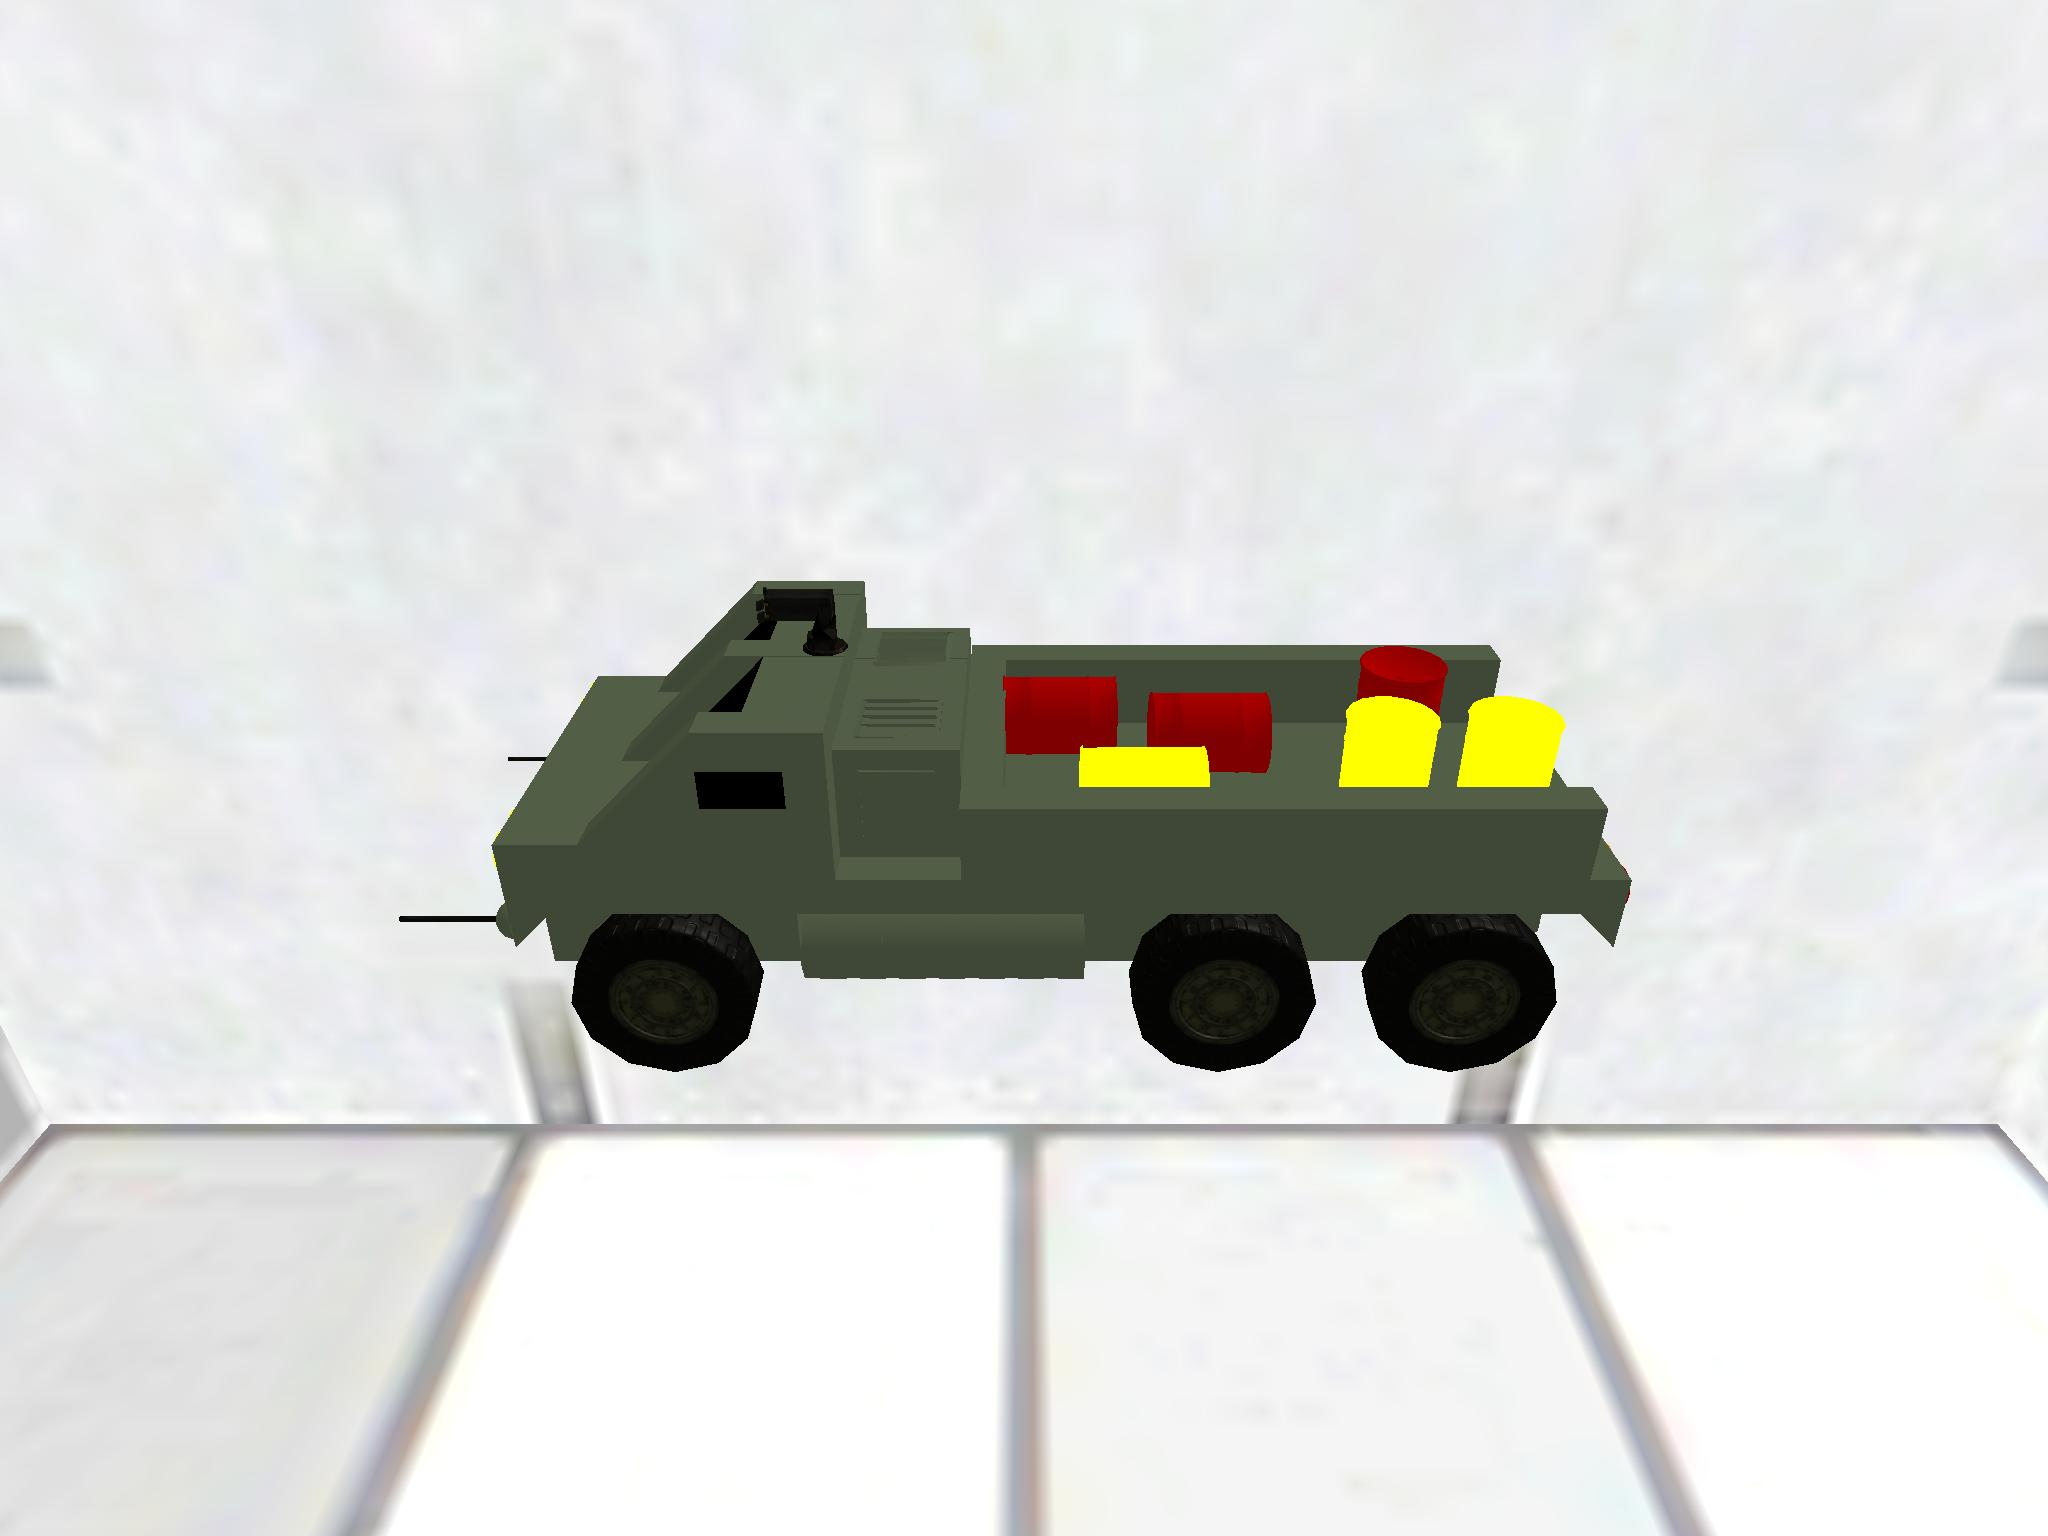 Armored garbage truck 4